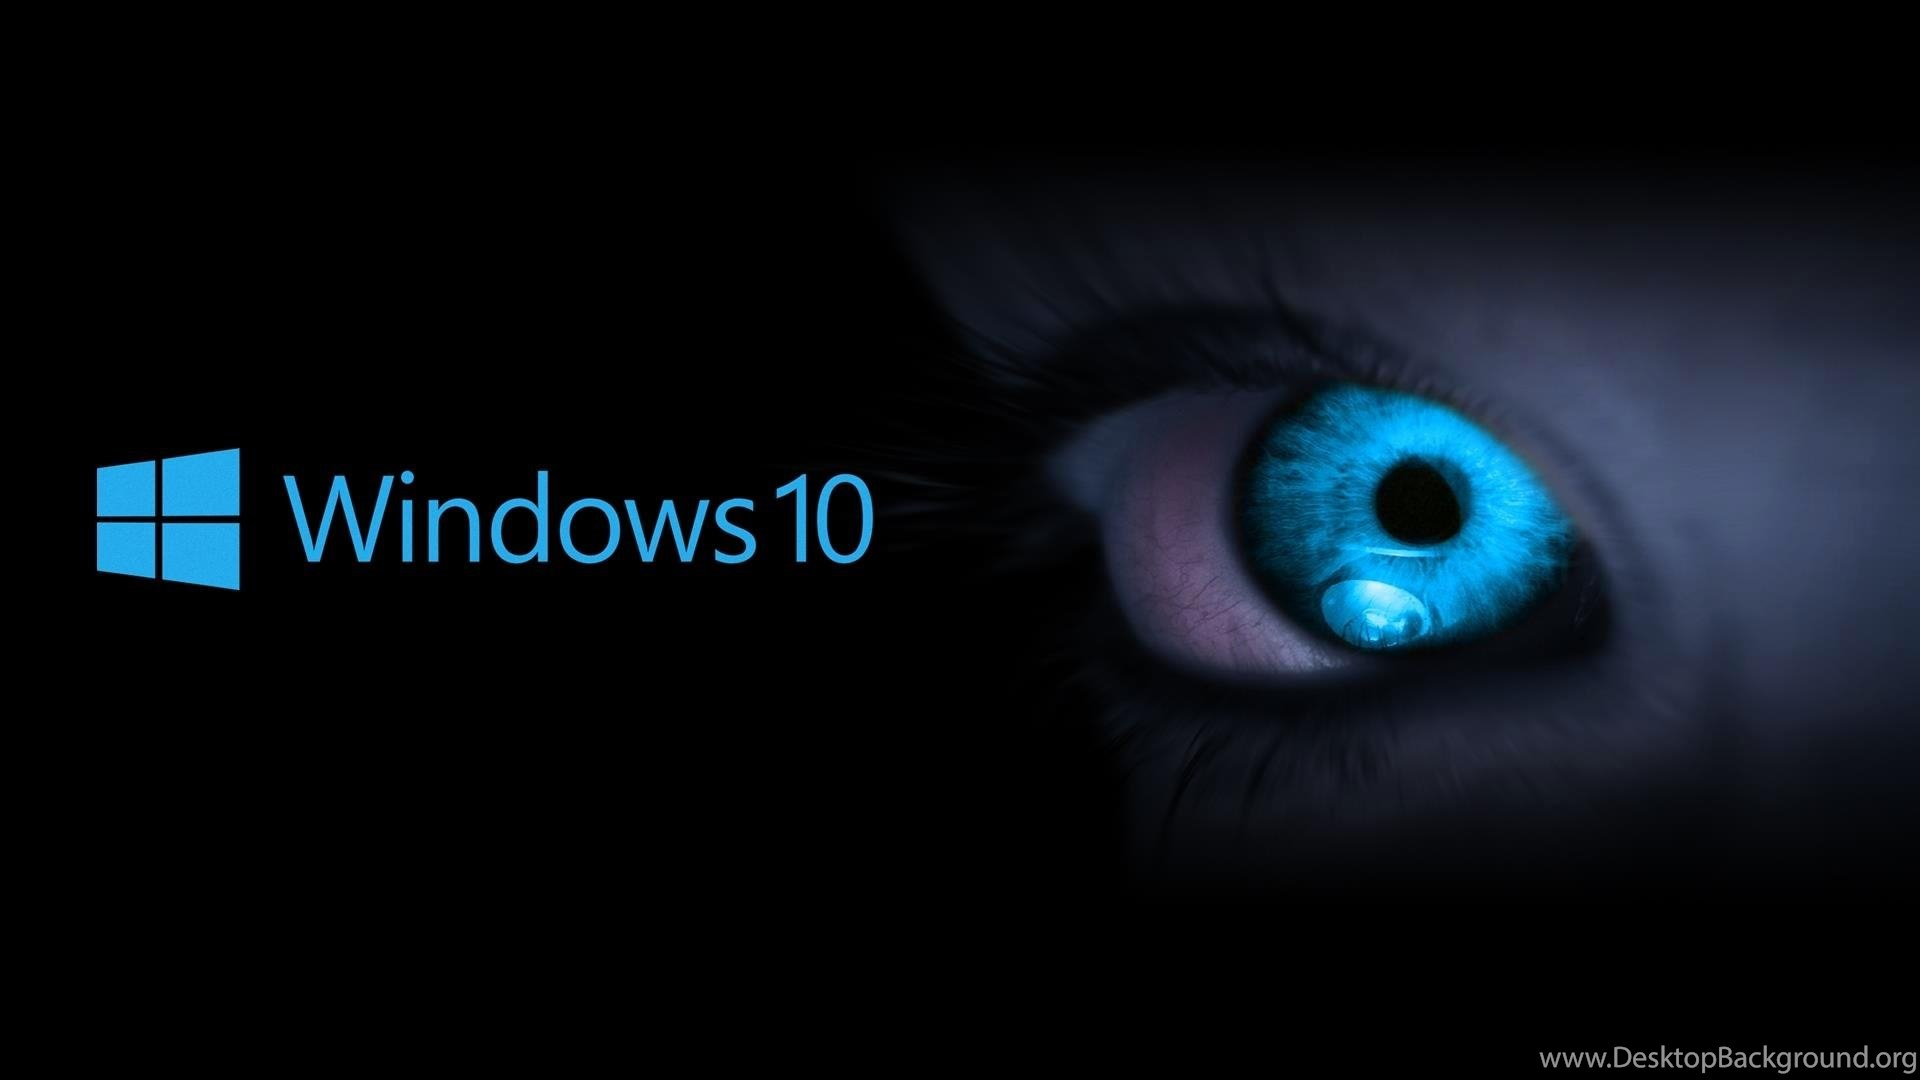 Wallpaper For Iphone 4s Black Download Windows 10 Cortana Wallpapers Windows 10